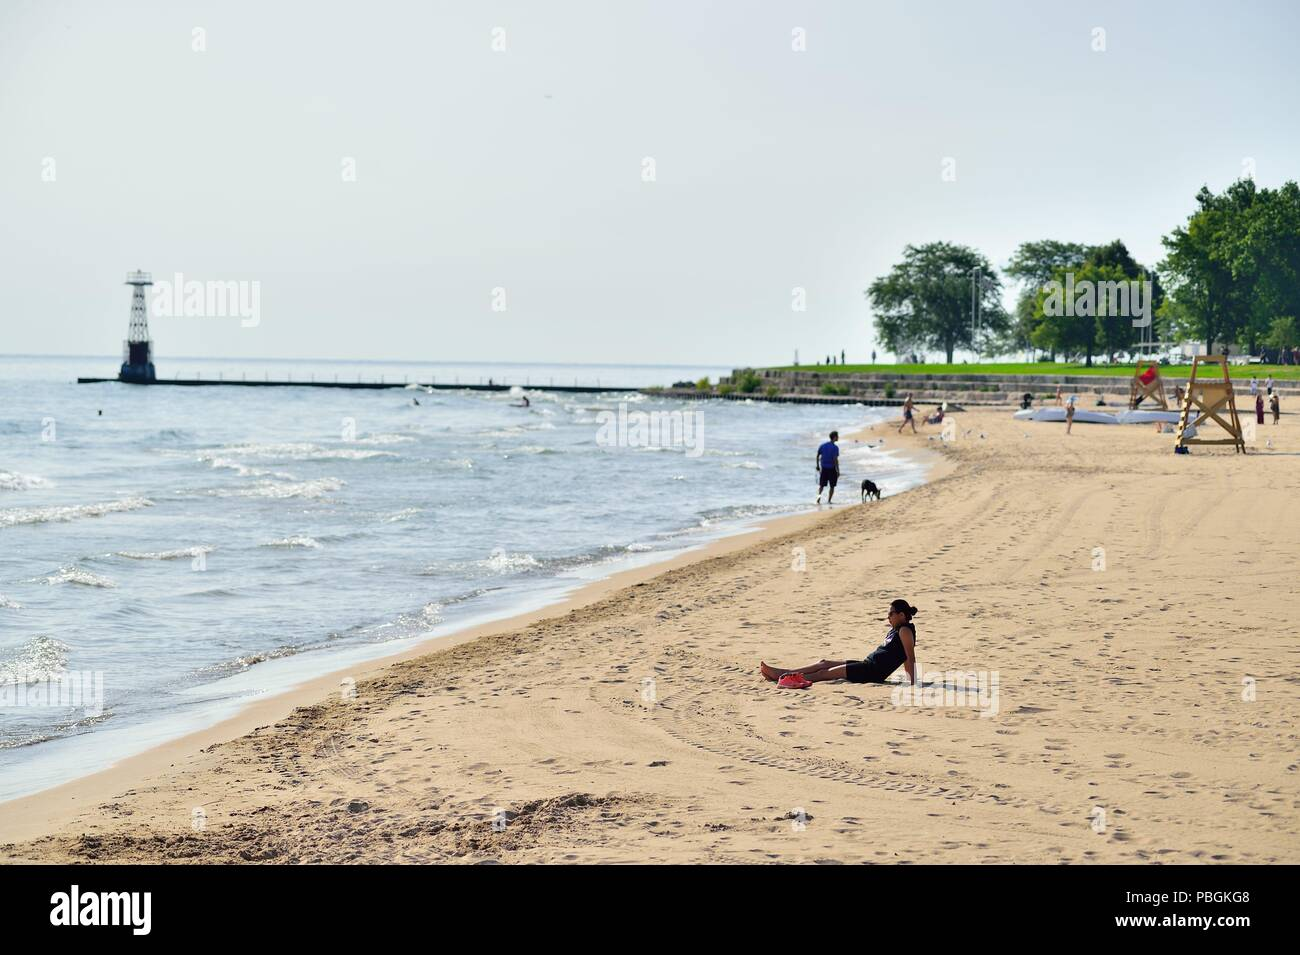 Chicago, Illinois, USA. A mostly deserted stretch of beach at Hollywood Beach, also known as Kathy Osterman Beach. - Stock Image